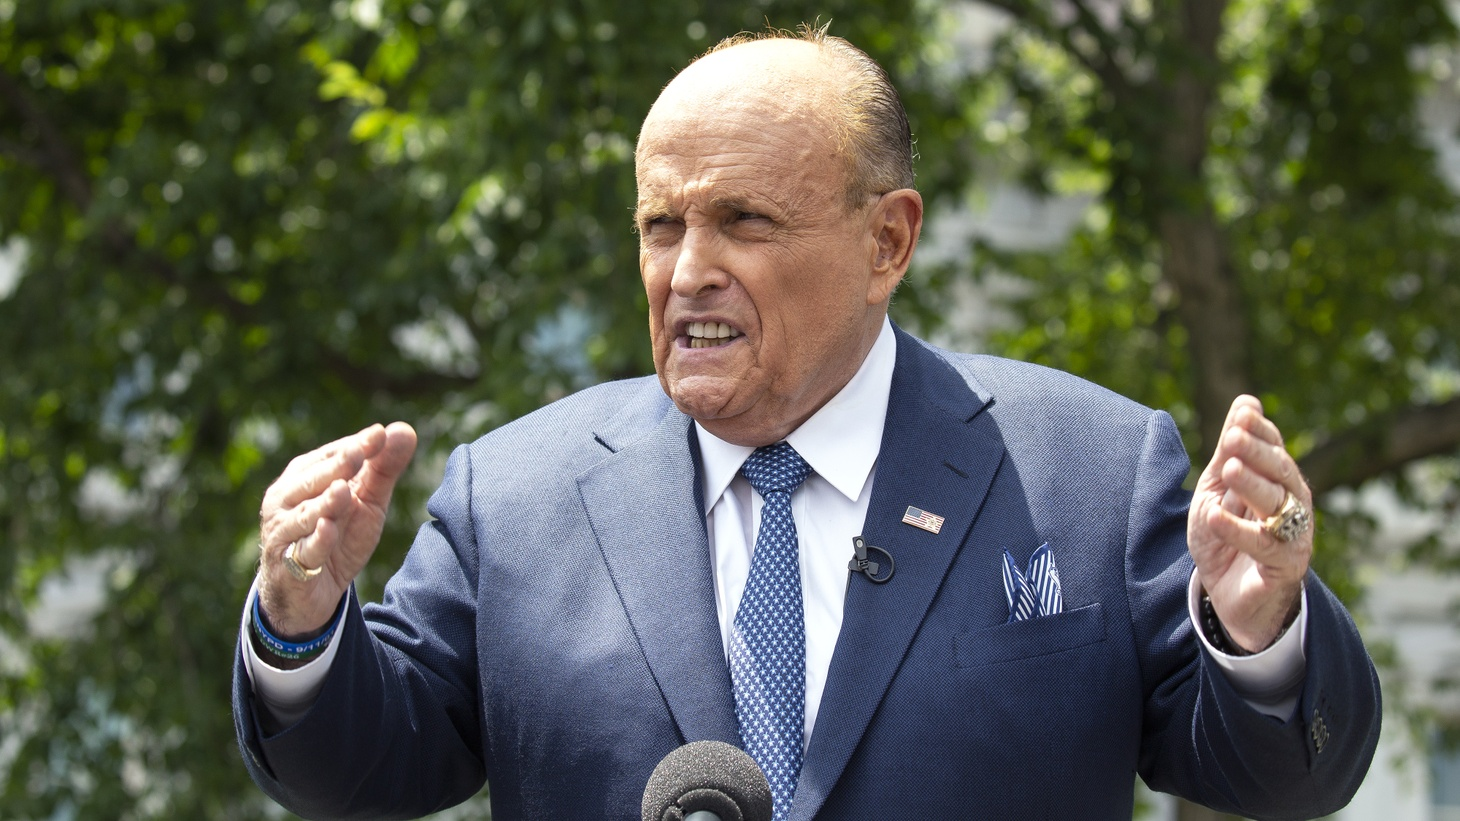 Rudy Giuliani, personal lawyer to United States President Donald J. Trump, speaks to members of the media following a television interview with One America News Network outside the White House in Washington D.C., U.S., on Wednesday, July 1, 2020.